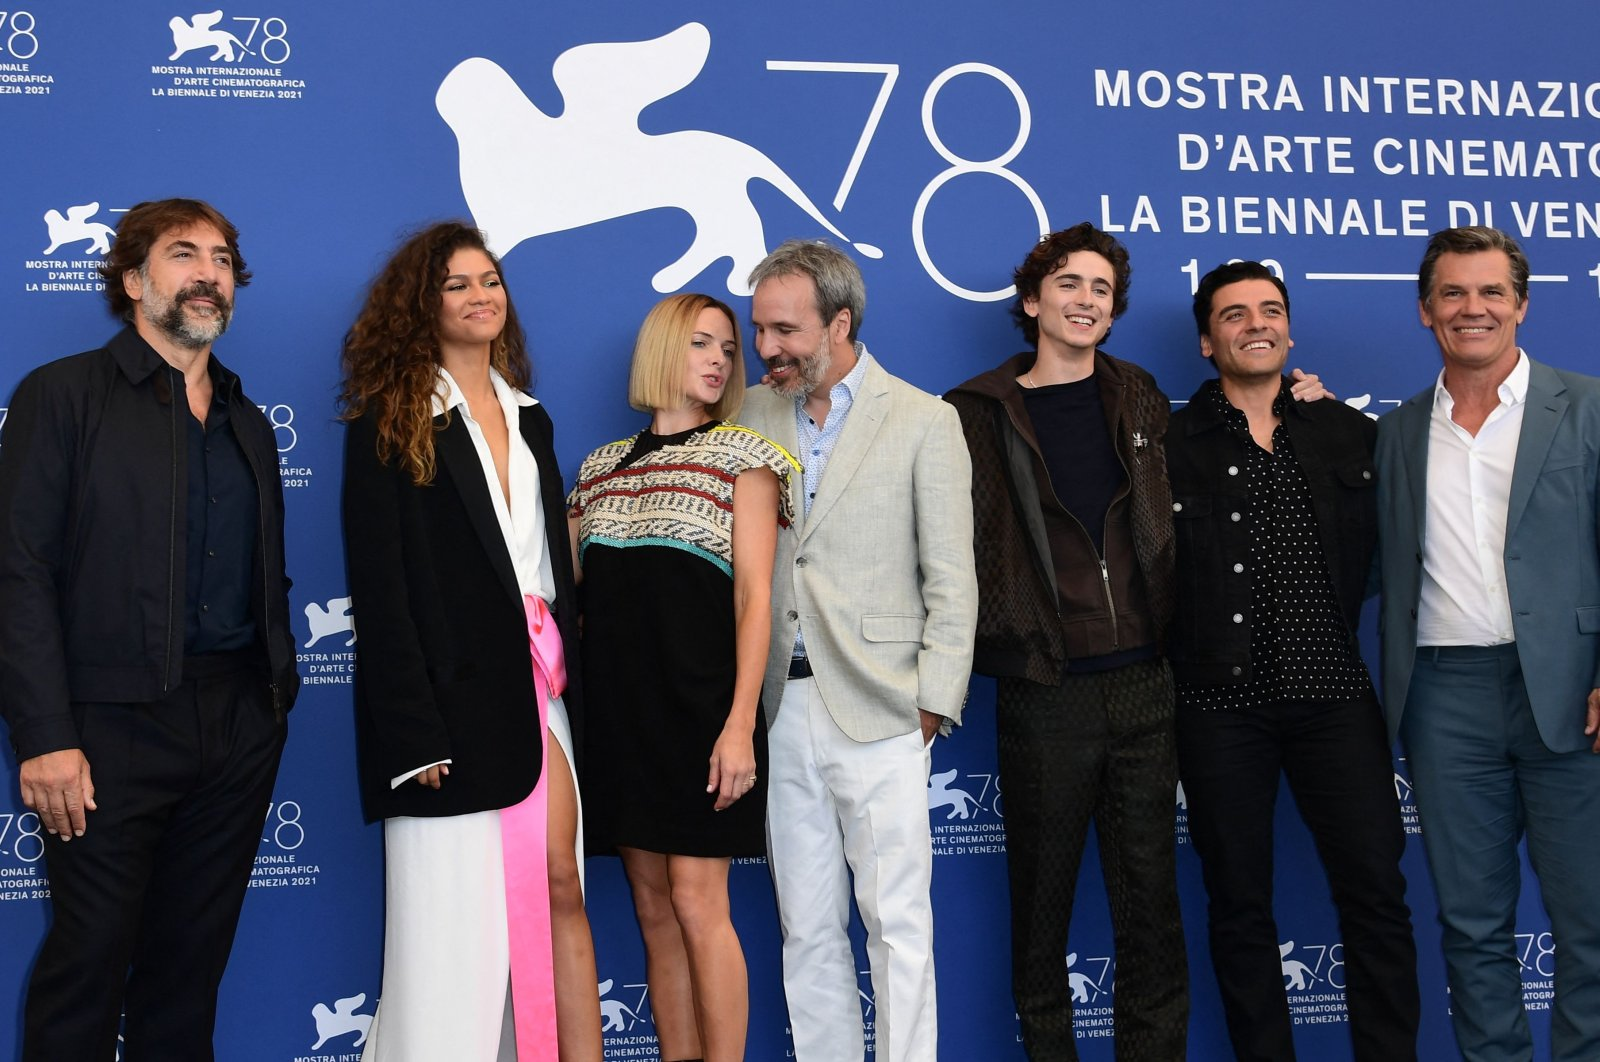 """(L-R) Javier Bardem, Zendaya, Rebecca Ferguson, Denis Villeneuve, Timothee Chalamet, Oscar Isaac and Josh Brolin,attend a photocall for the film """"Dune""""at the 78th Venice Film Festival, in Venice, Italy,Sept.3, 2021. (AFP Photo)"""